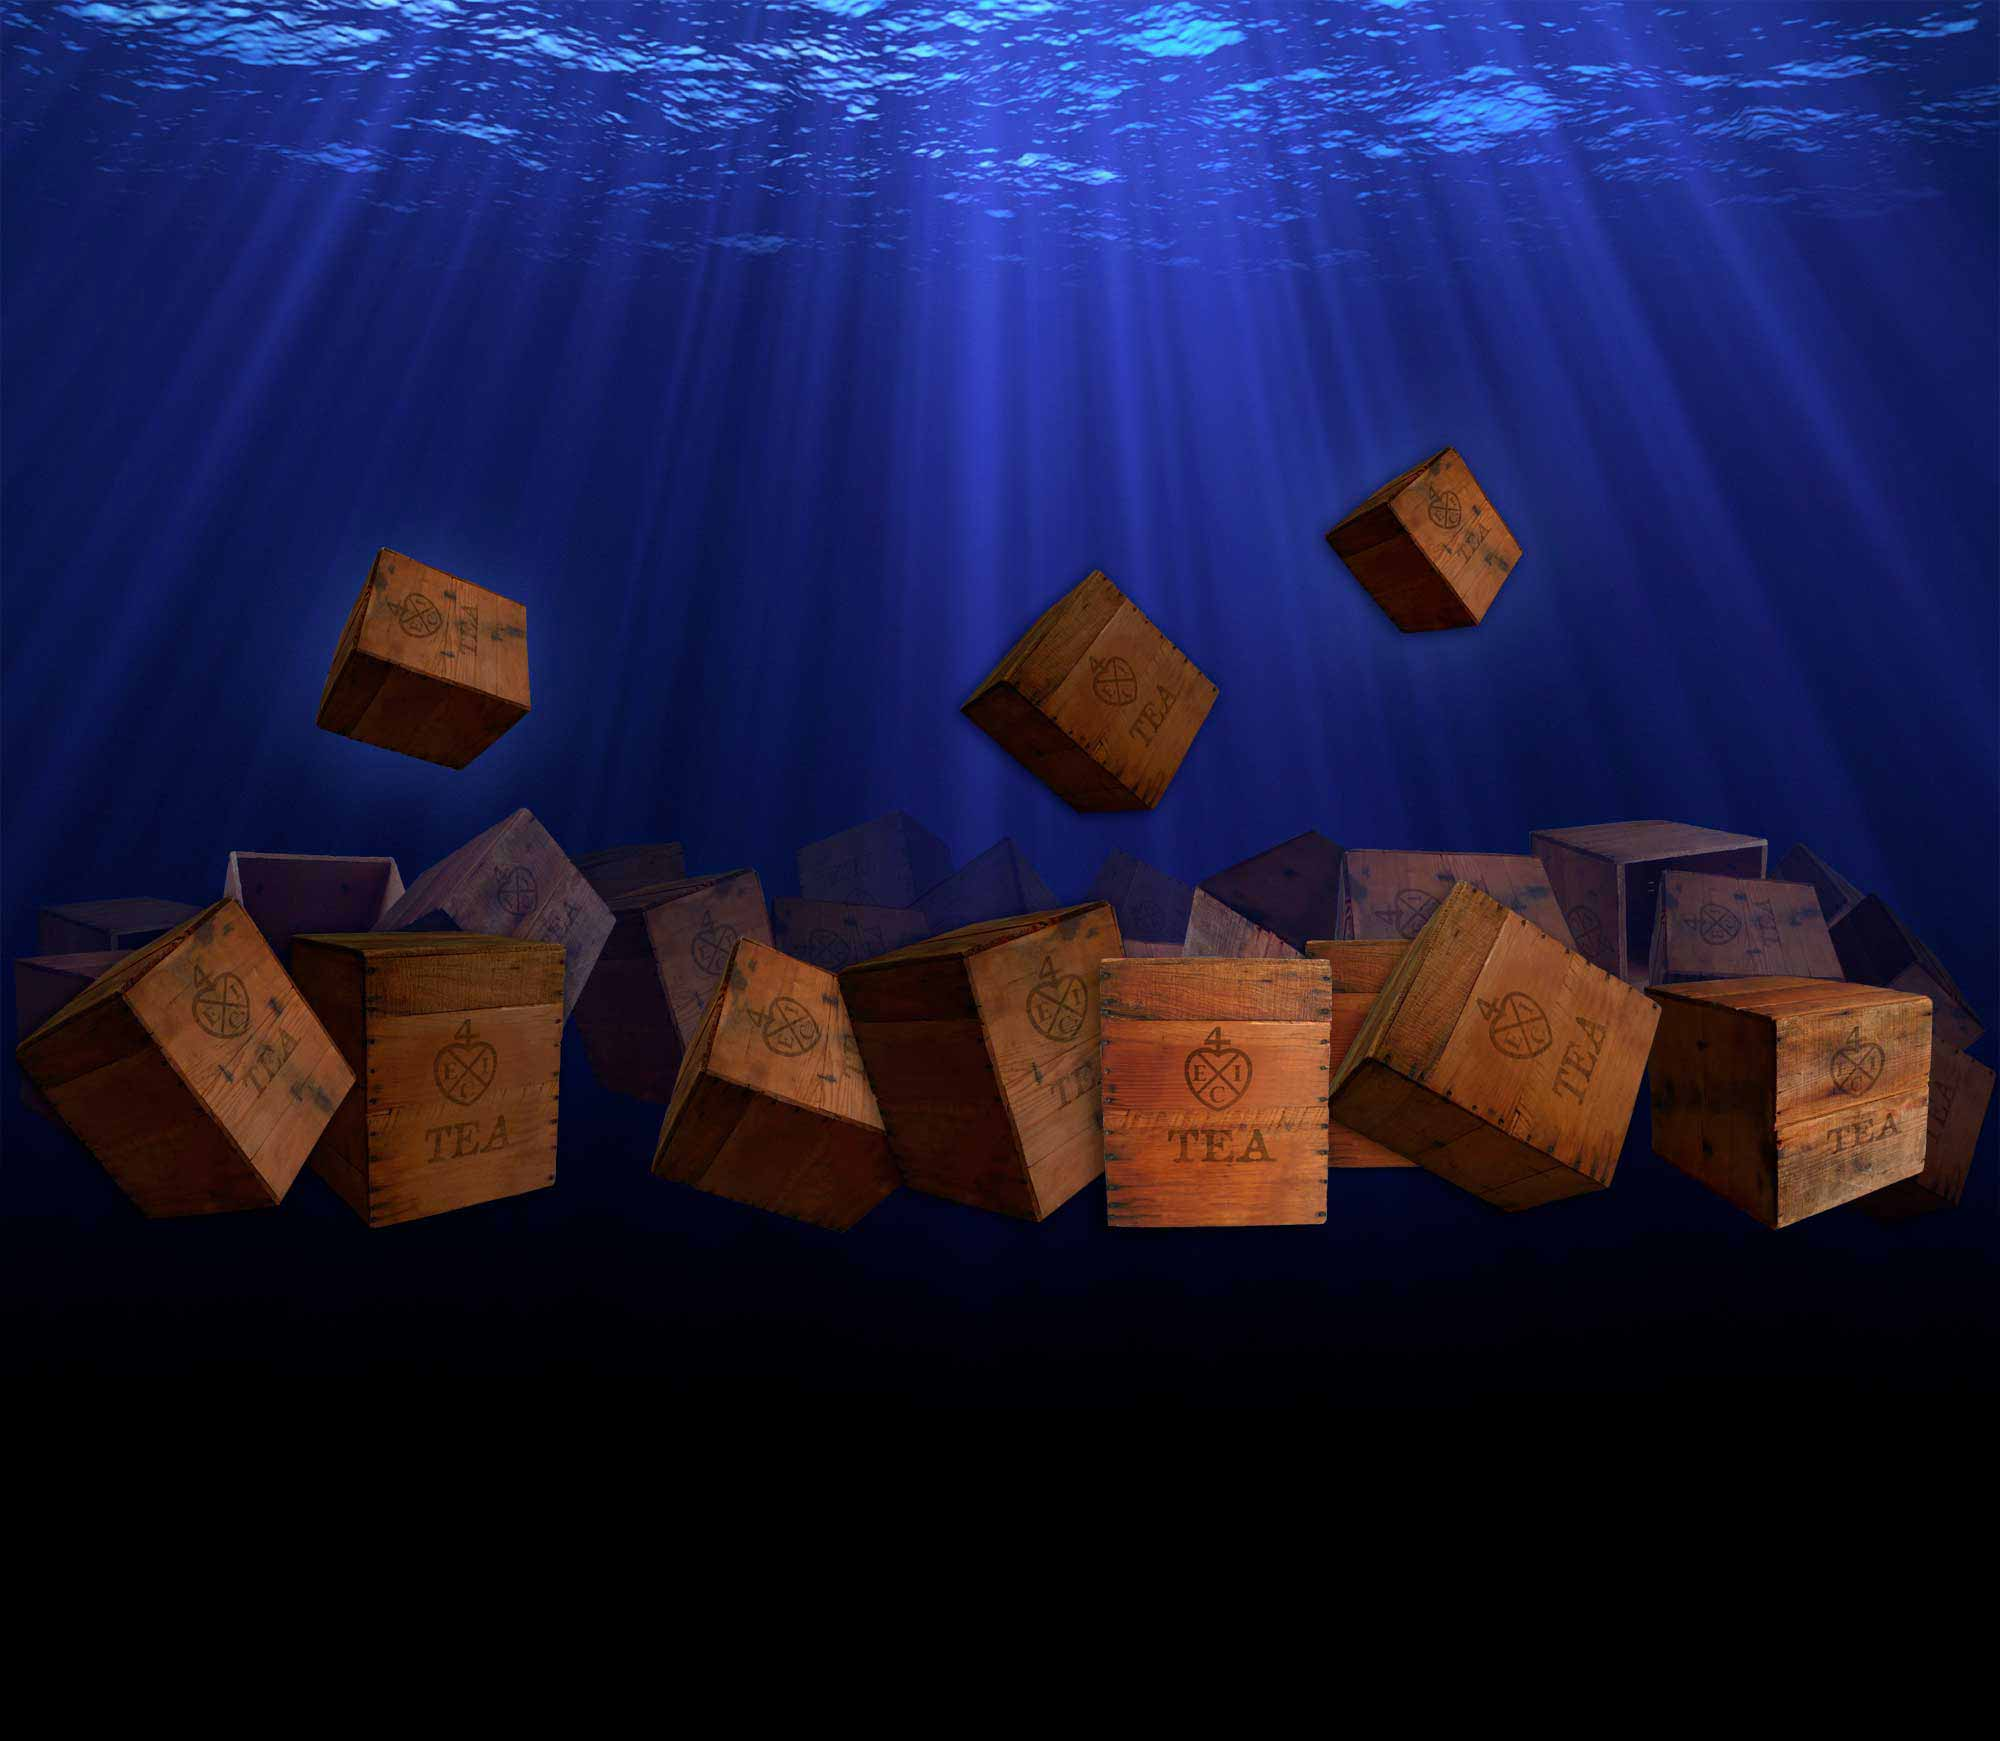 Background Image of Tea Crates